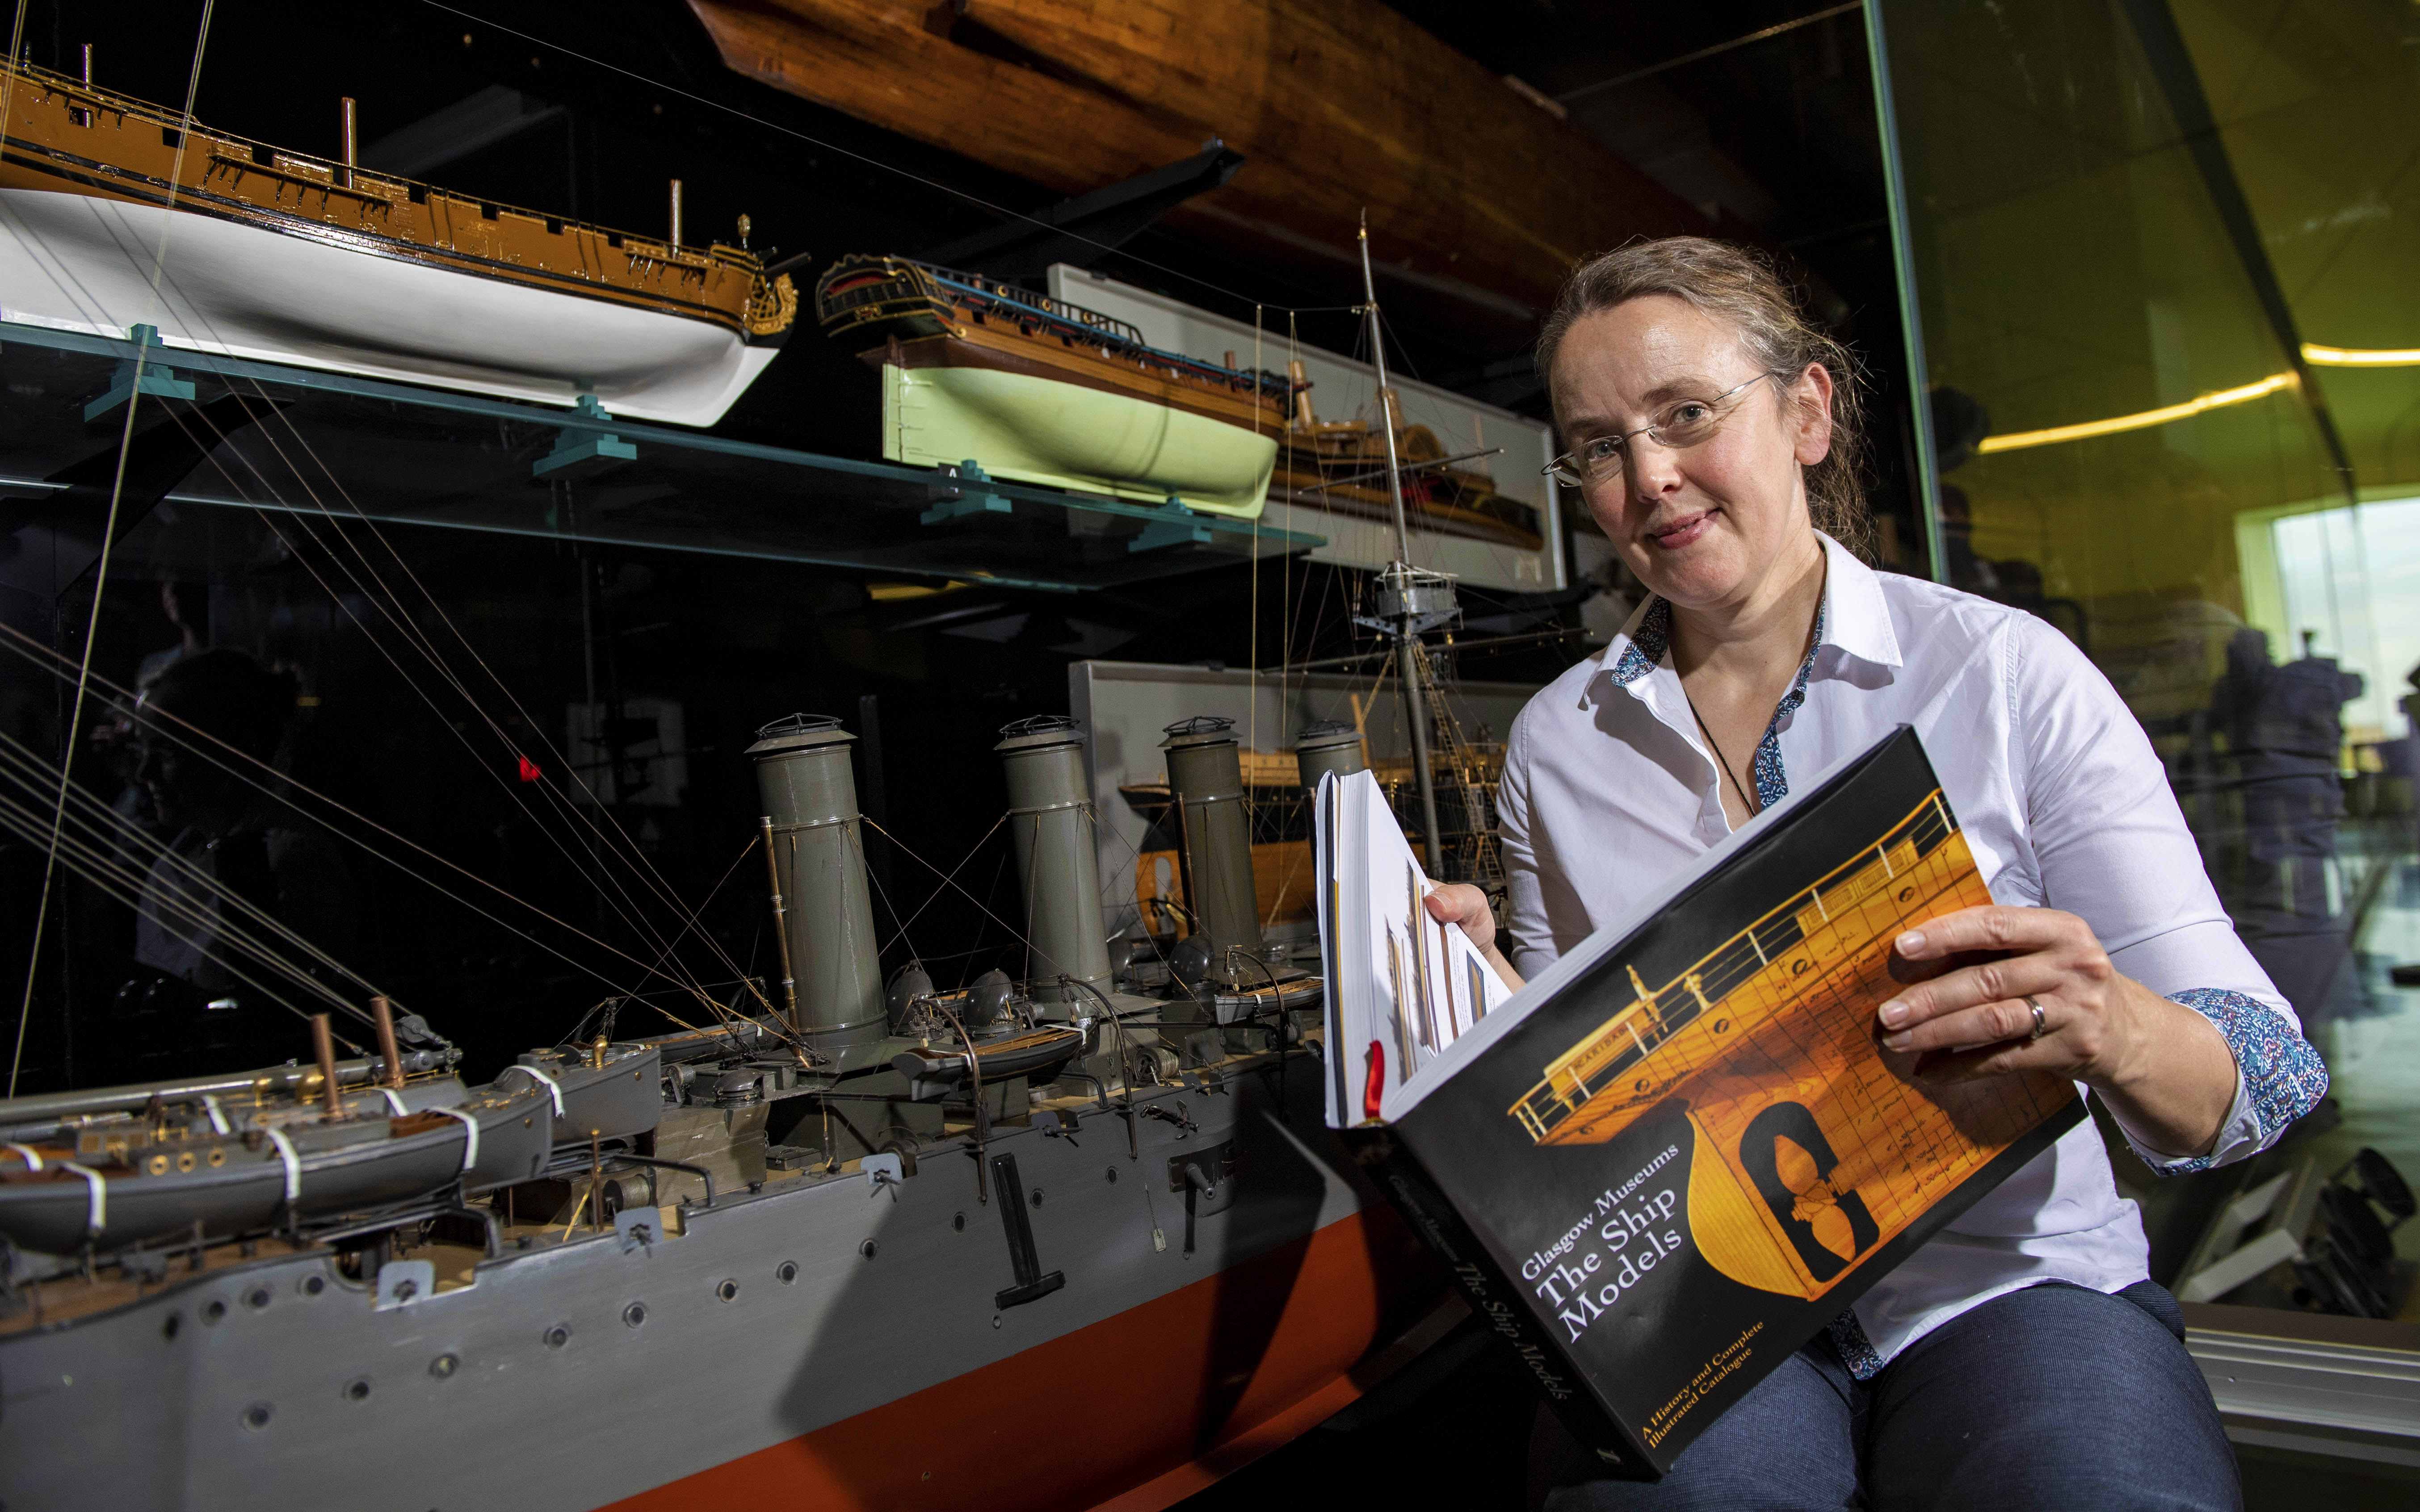 Lead author and curator of Glasgow Museums' ship model collection Emily Malcolm